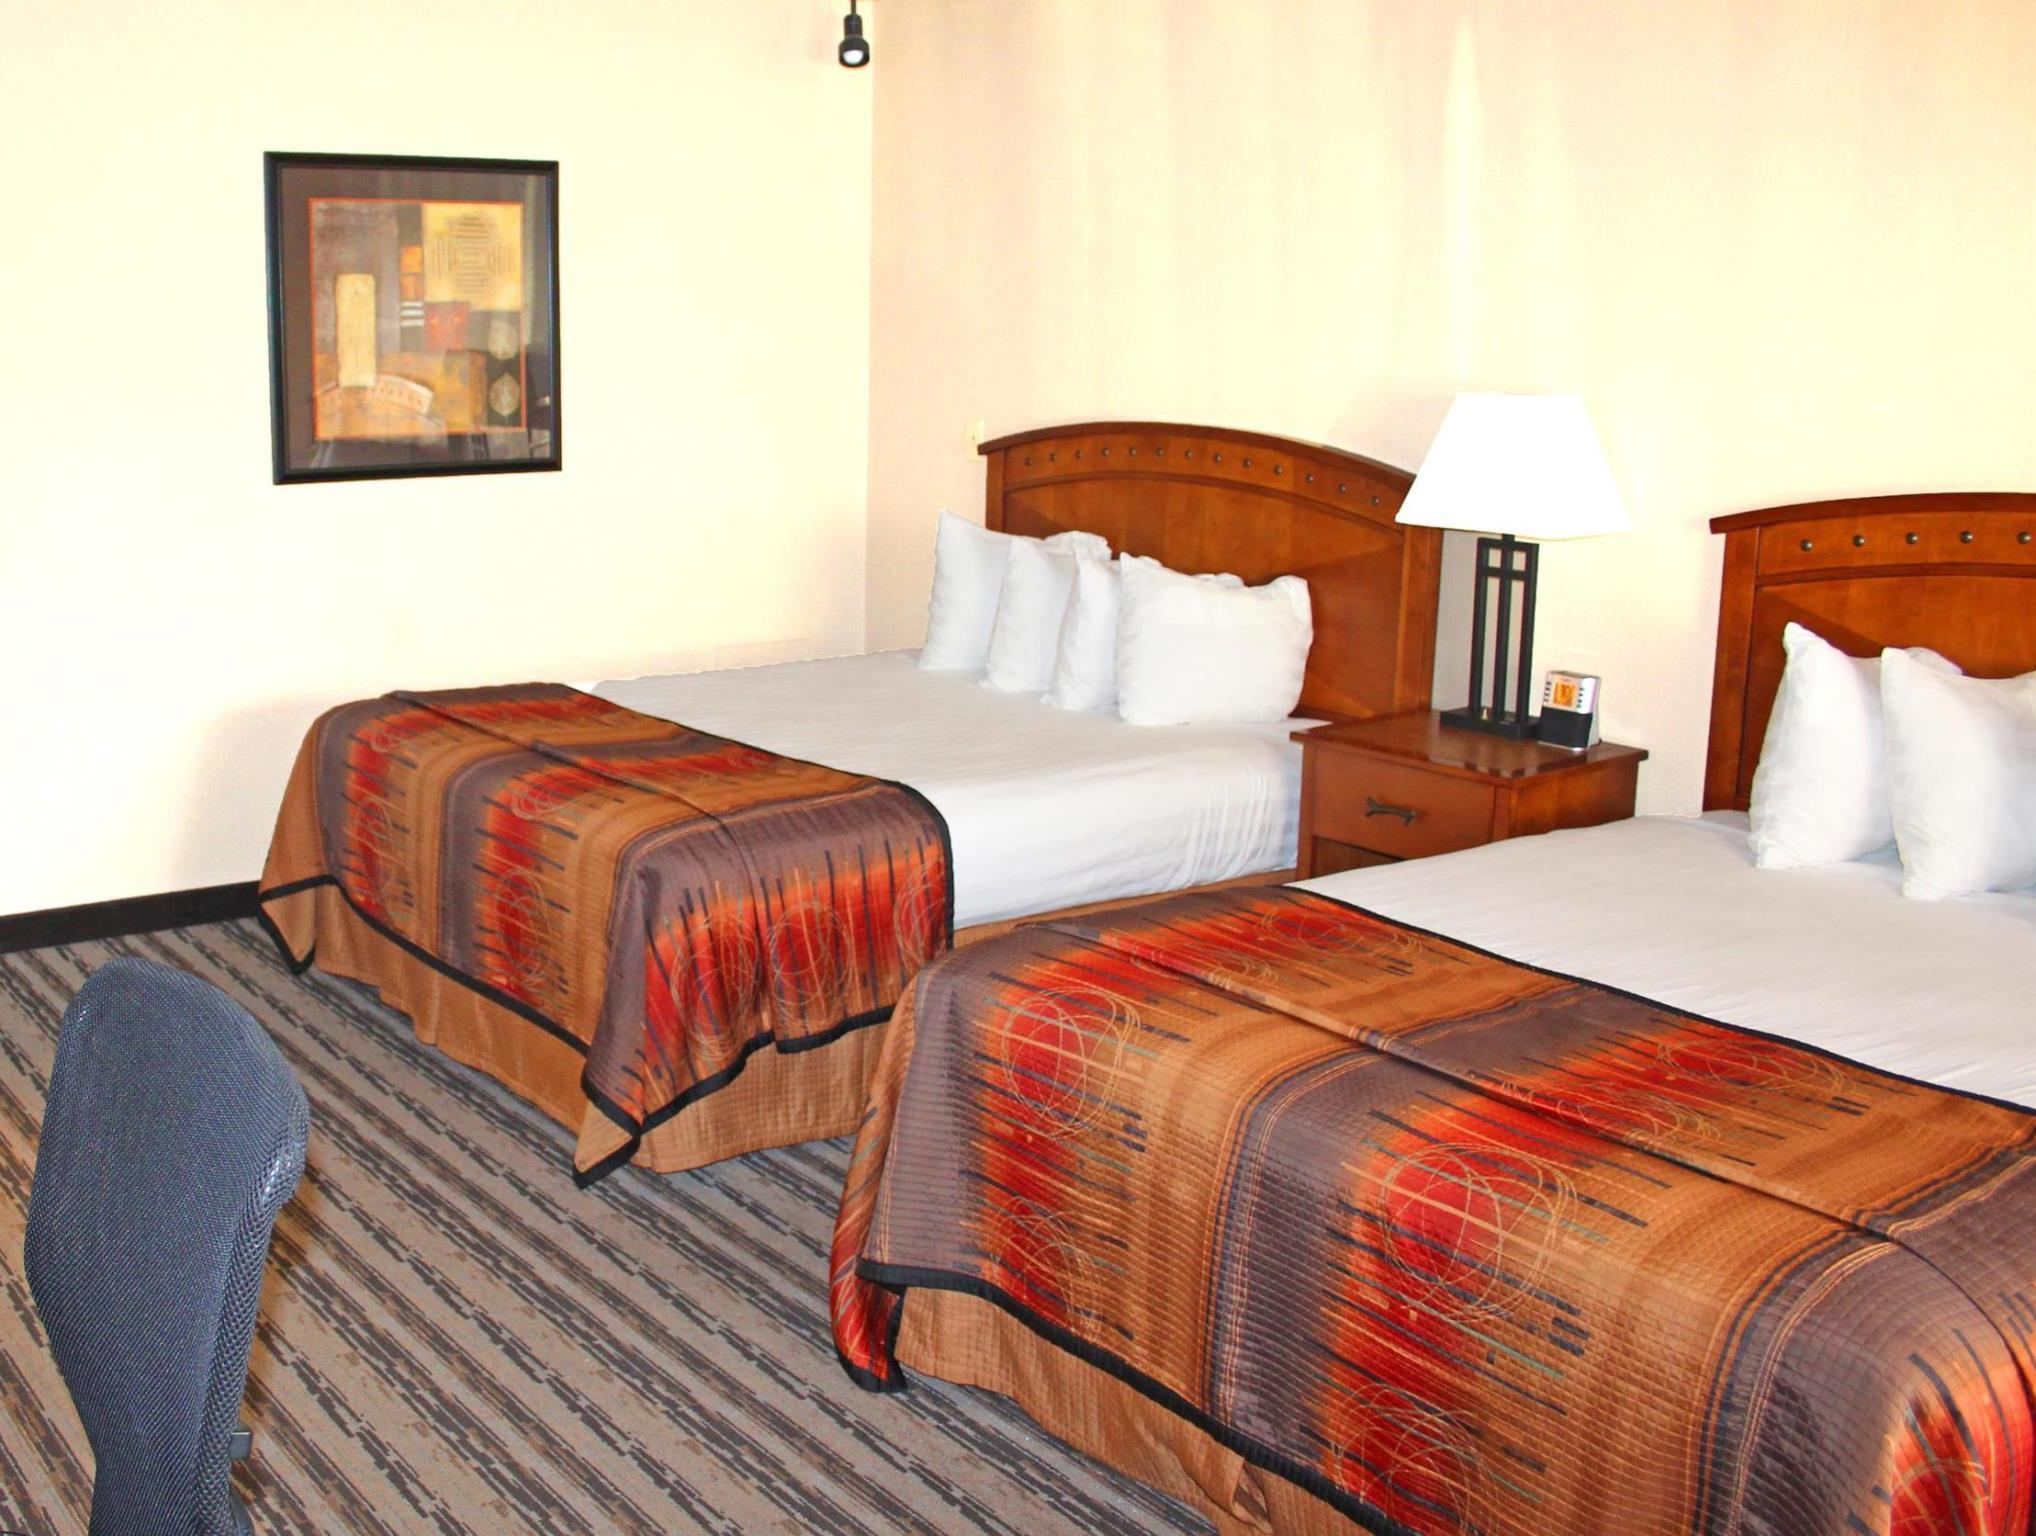 Suite-3 Rooms 5 Beds